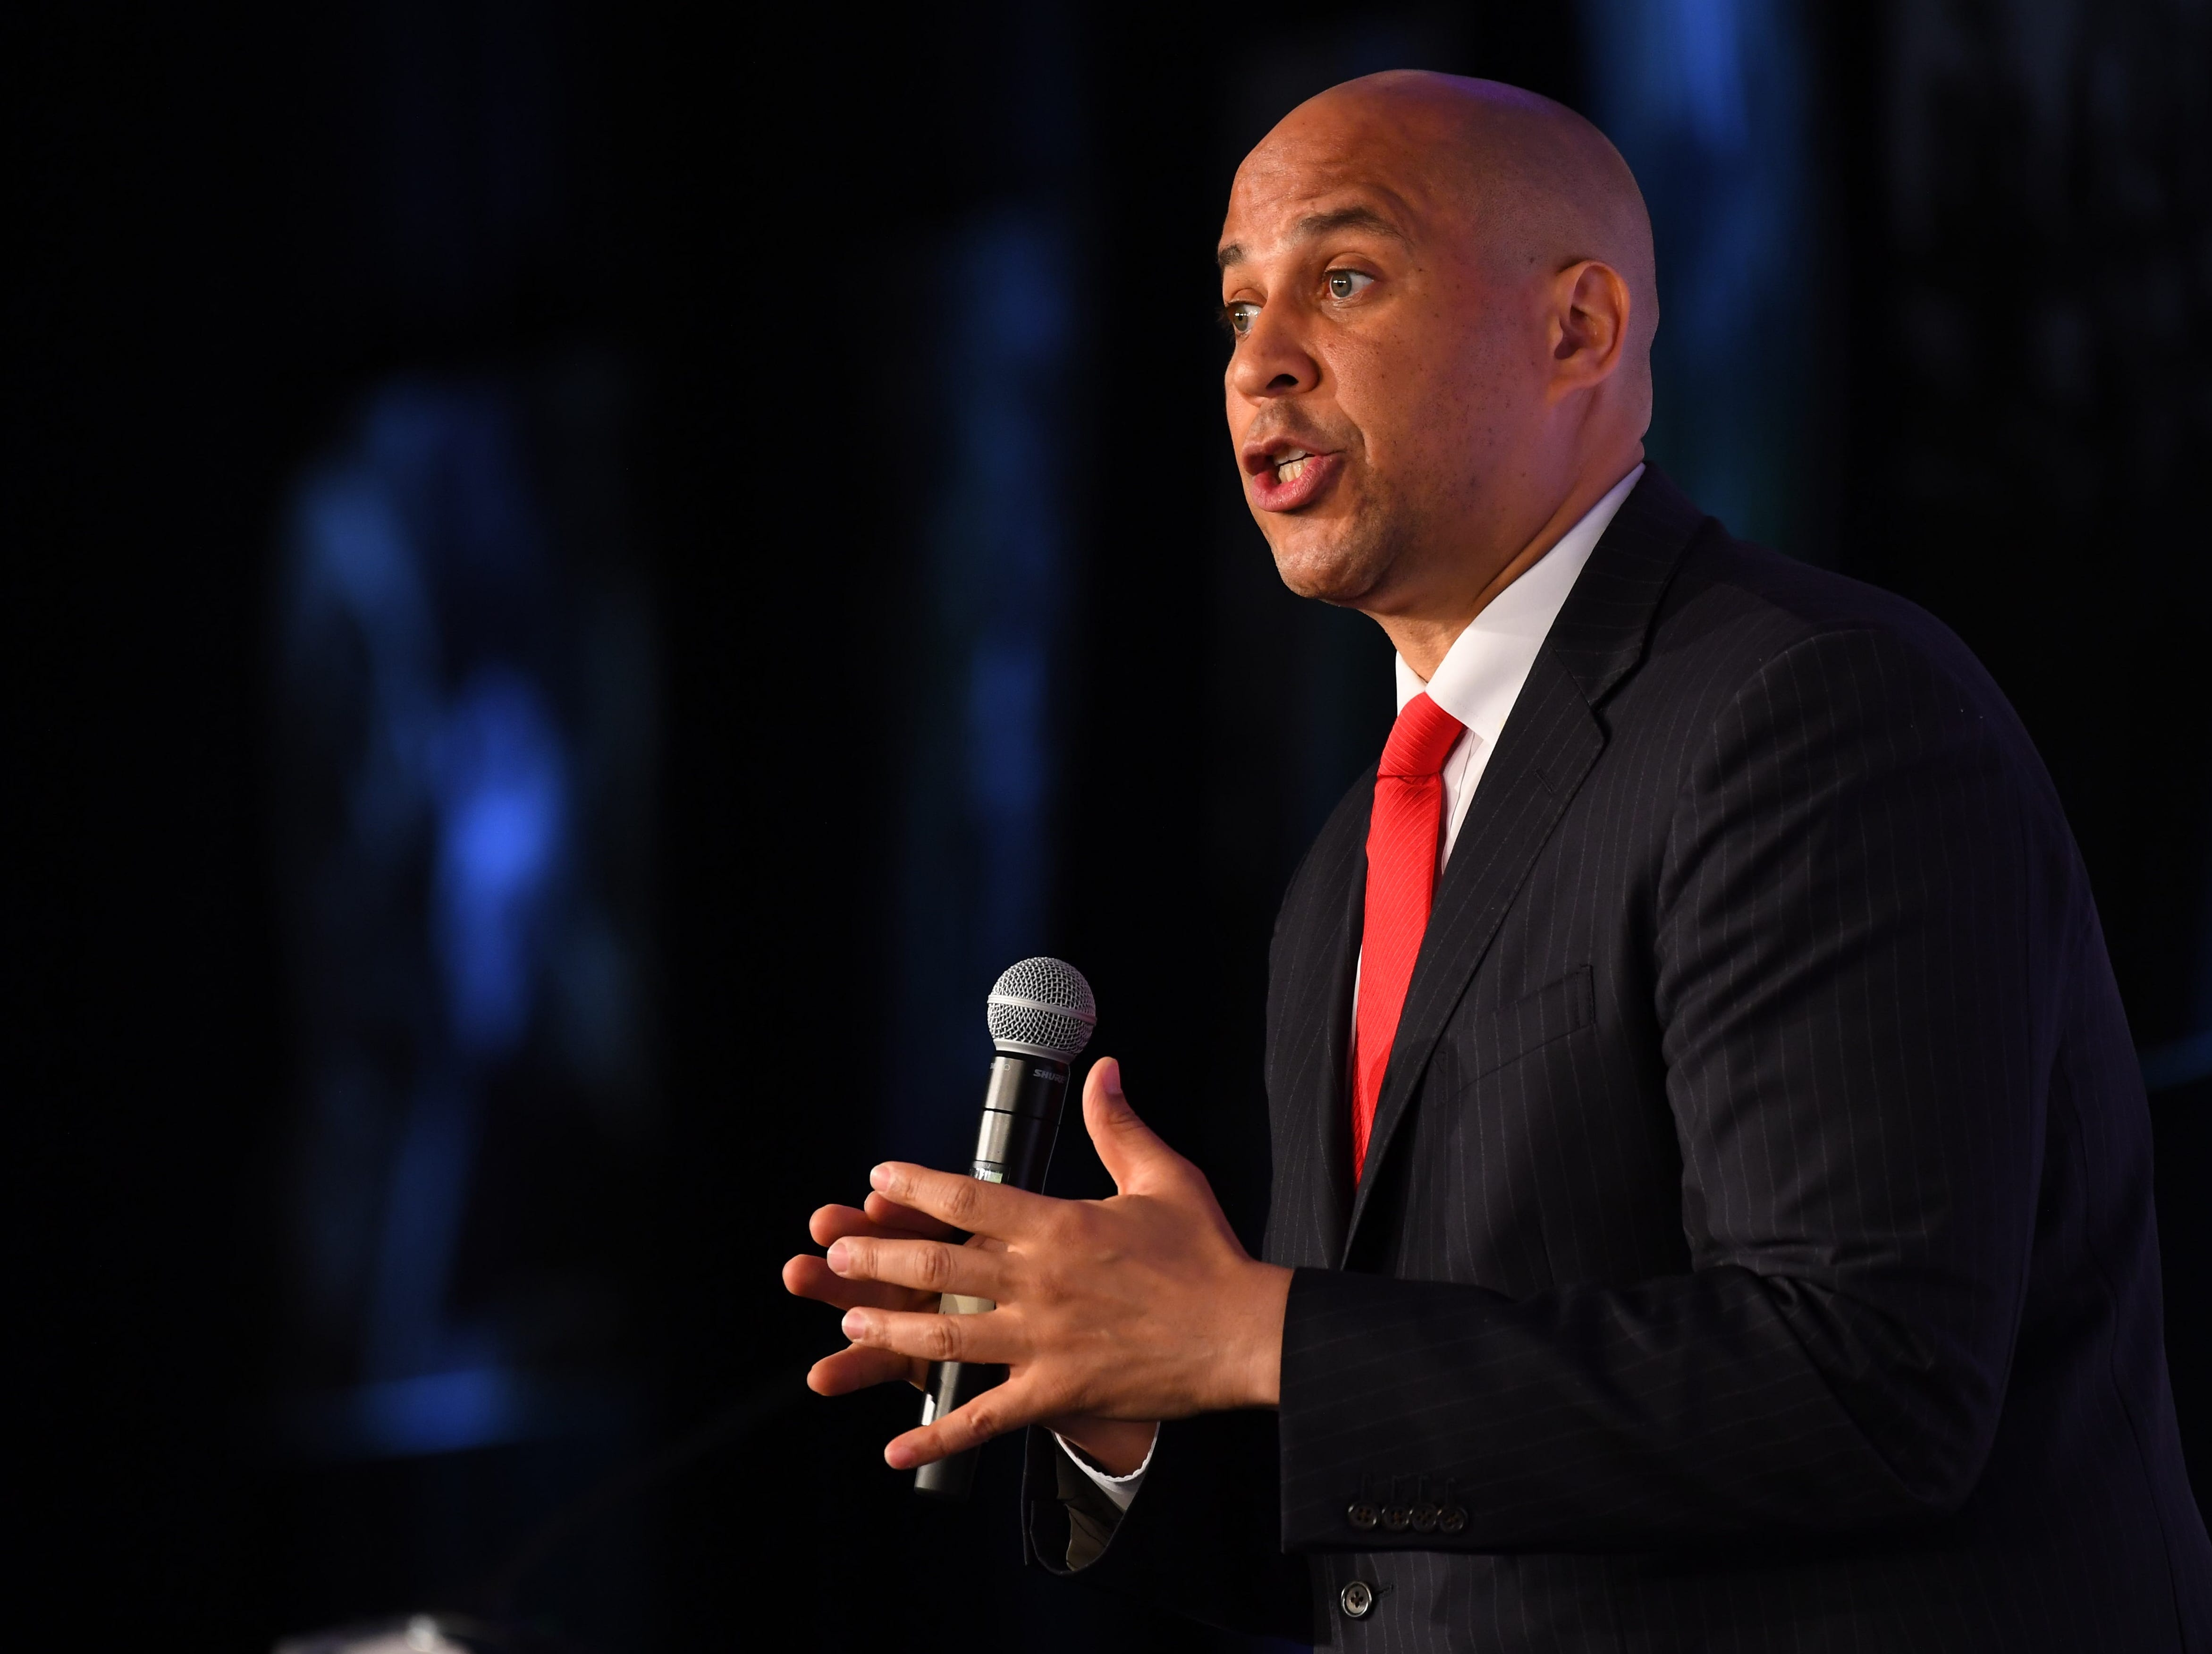 Senator Cory Booker, D-NJ announced he was running for president on Feb. 1, 2019.